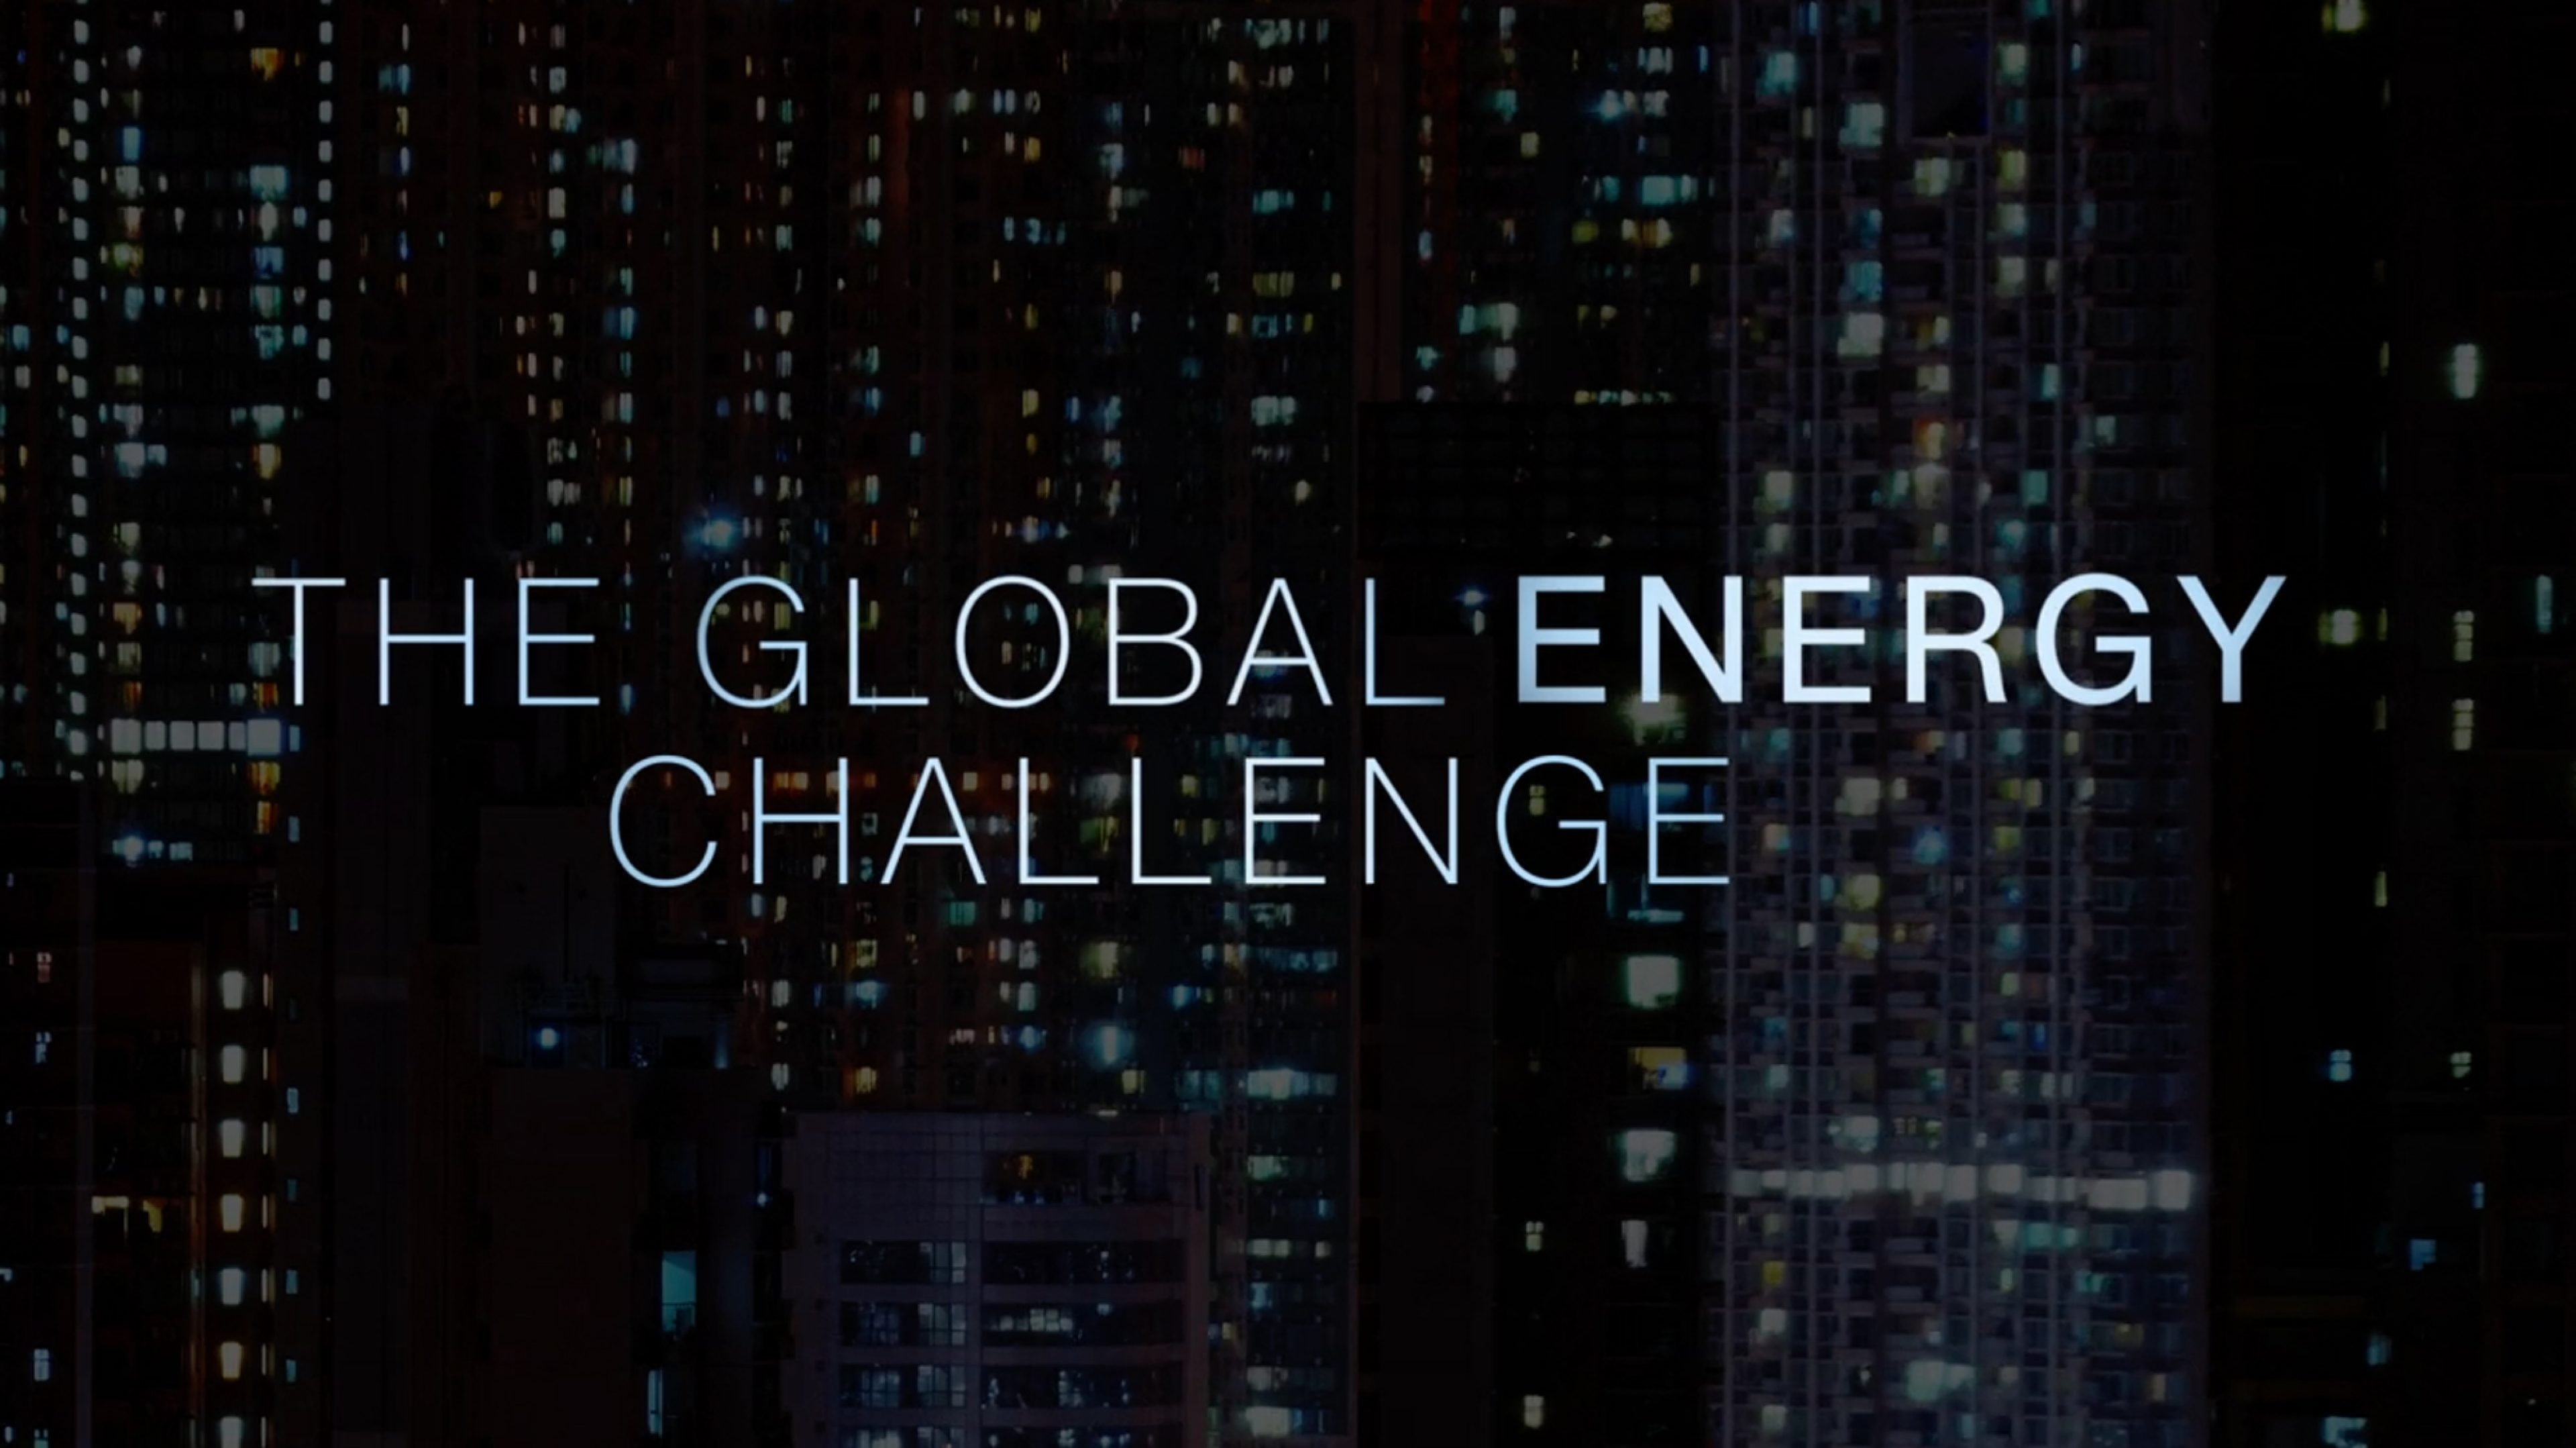 CNN - The global energy challenge